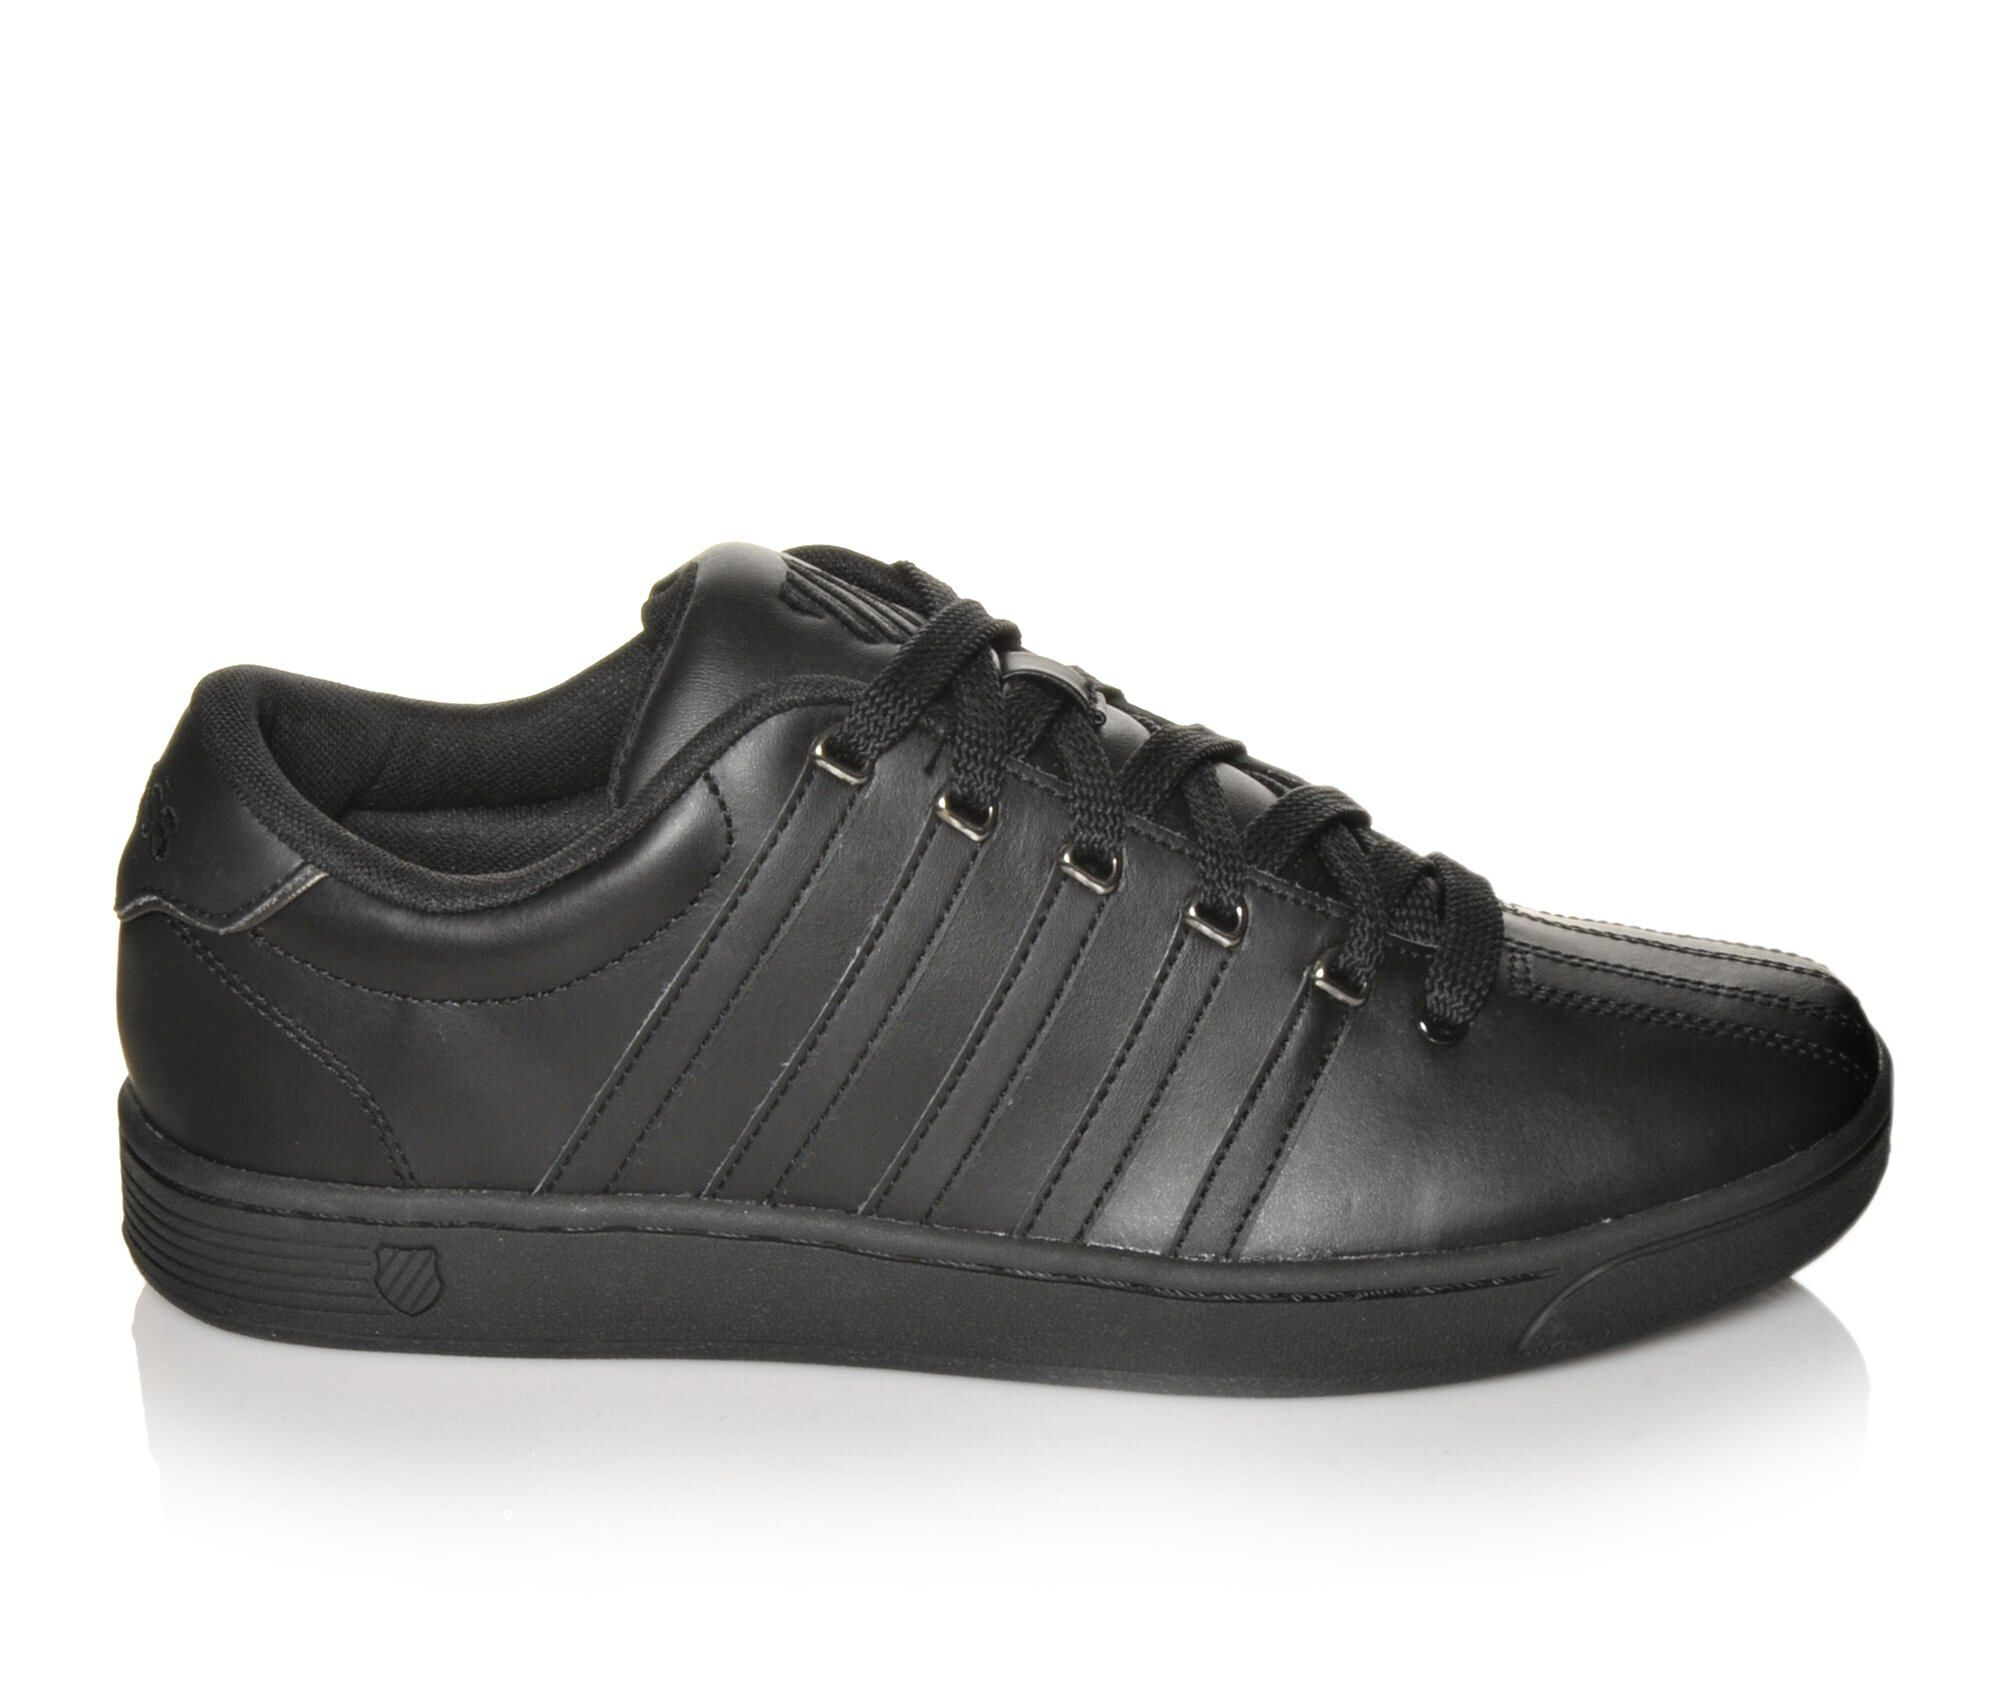 k-swiss shoes for women black